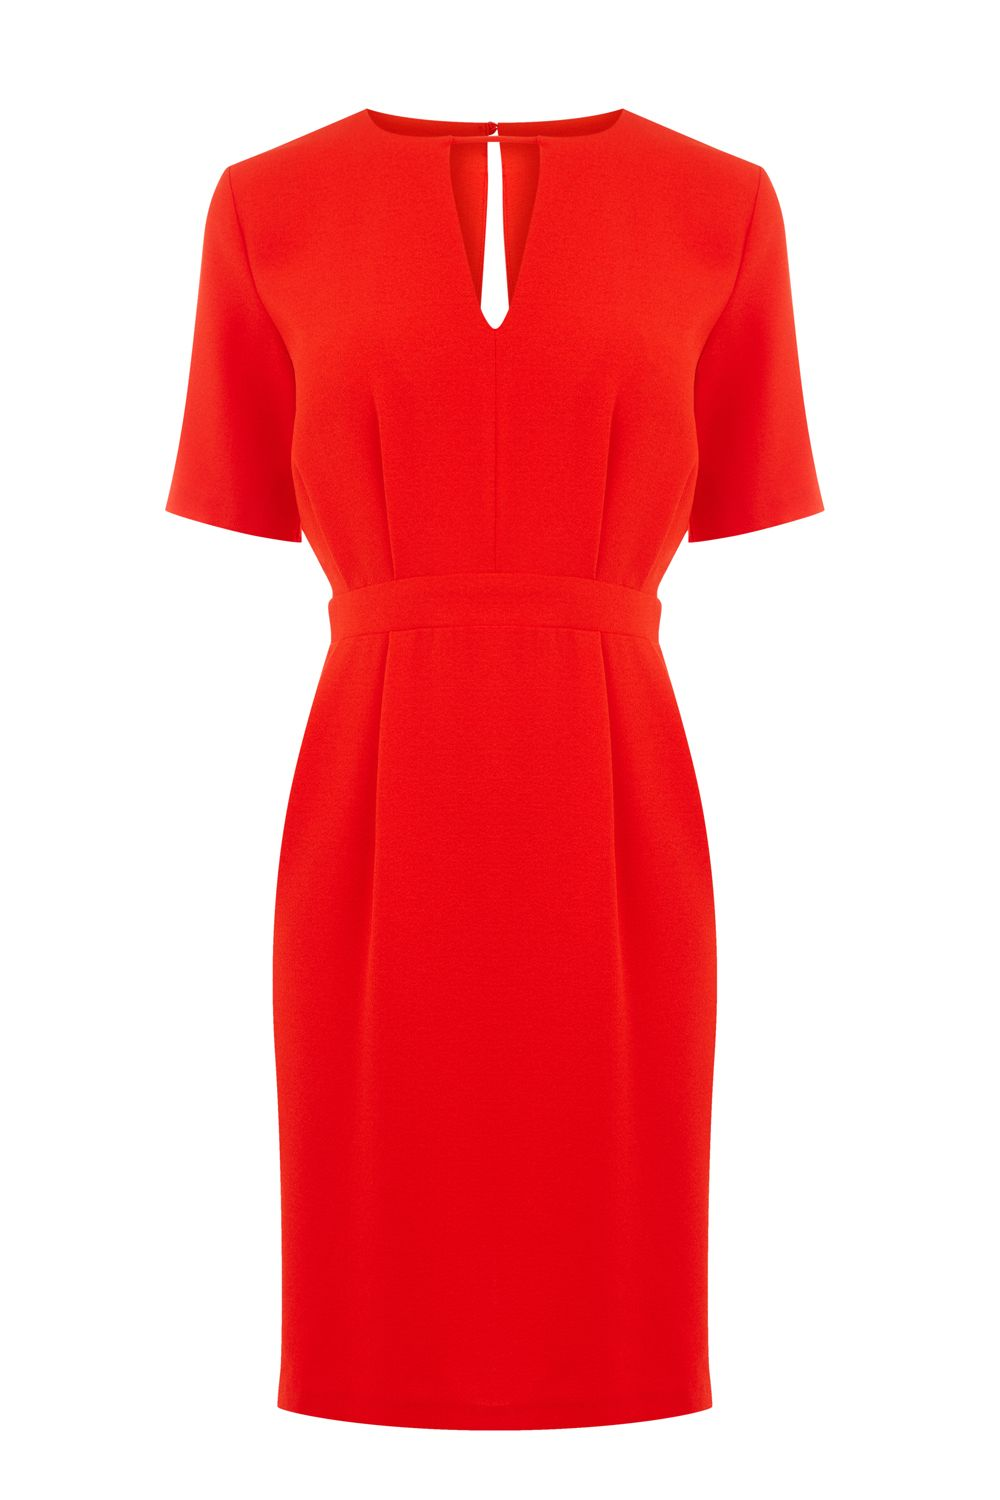 Warehouse V Front Dress, Red